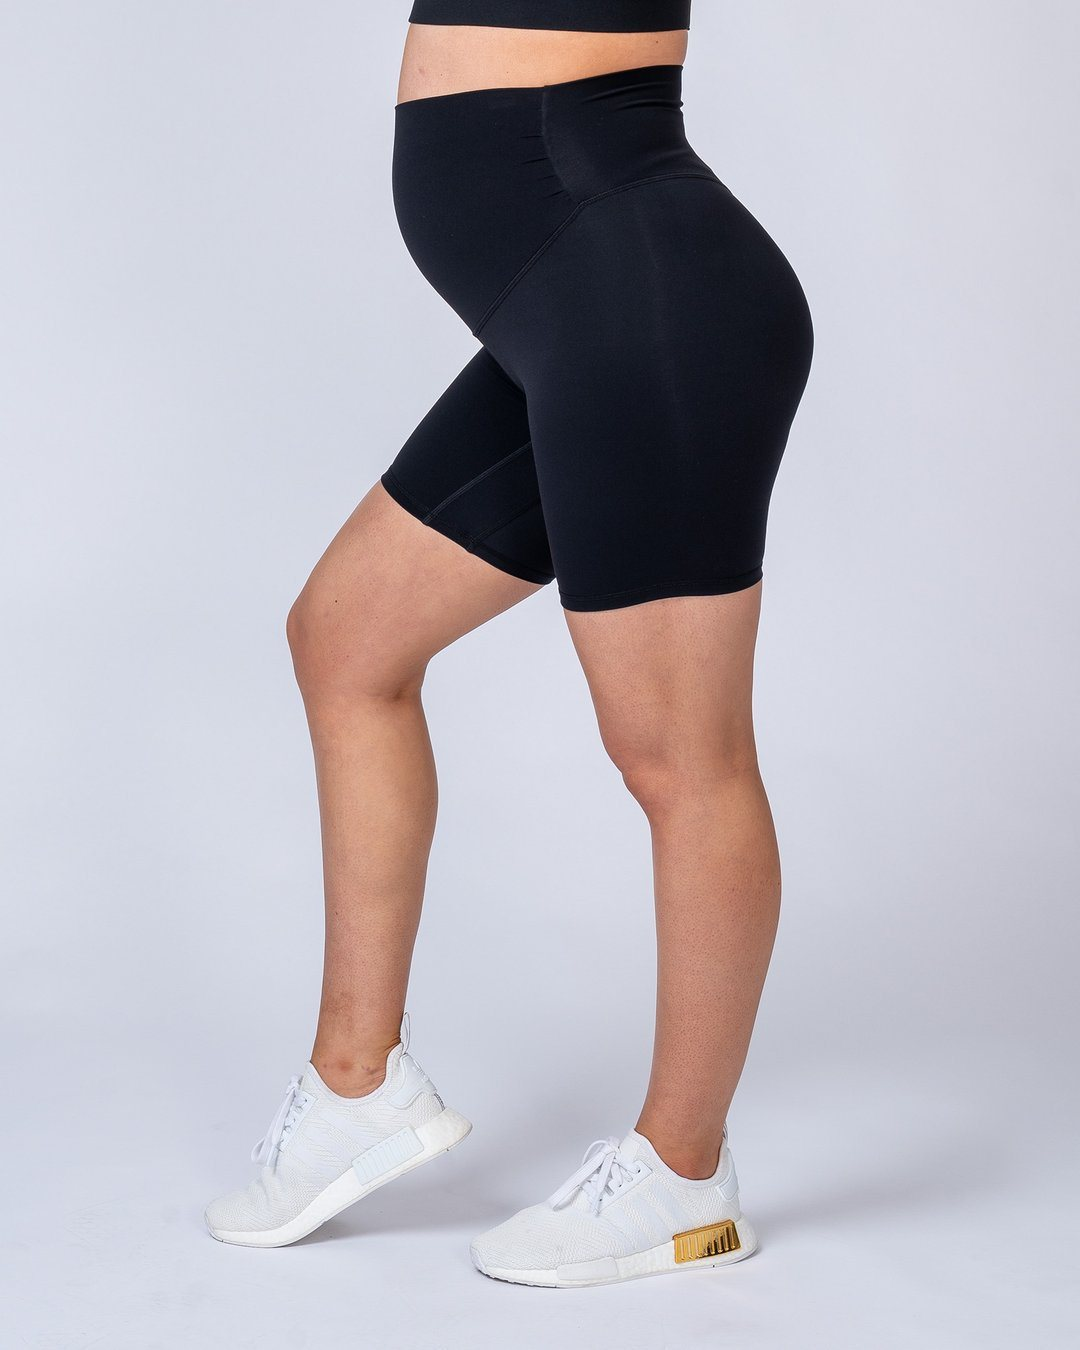 Muscle Nation Maternity Bike Shorts - Black